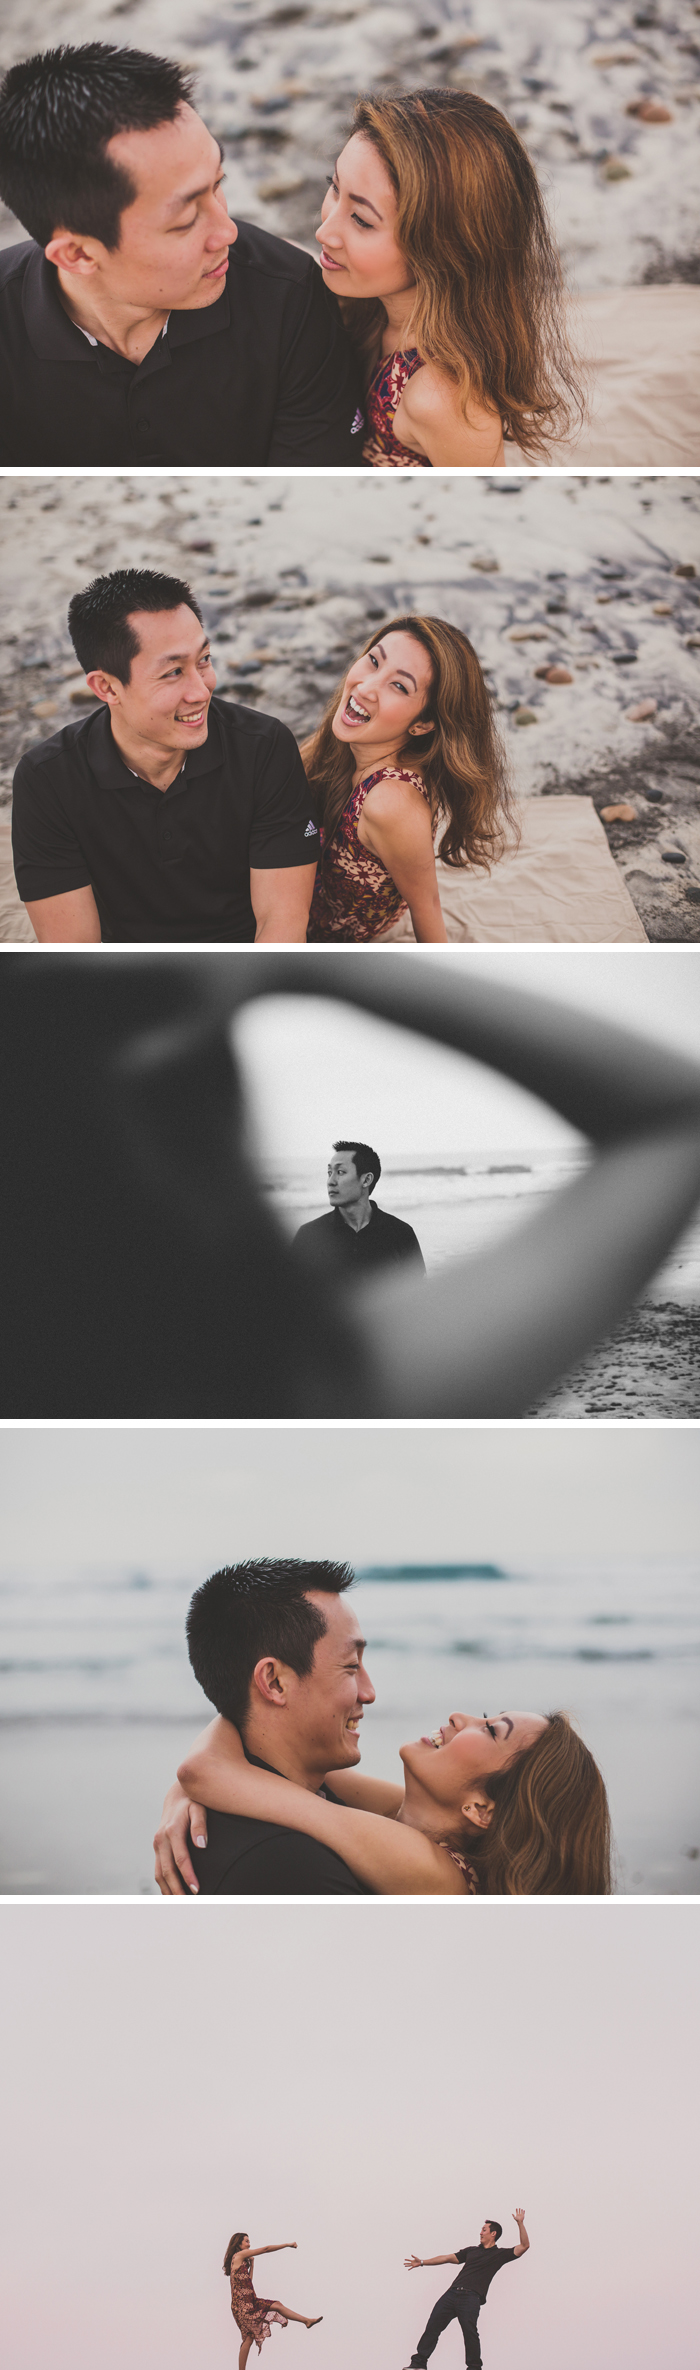 Engagement Session In Carlsbad, California